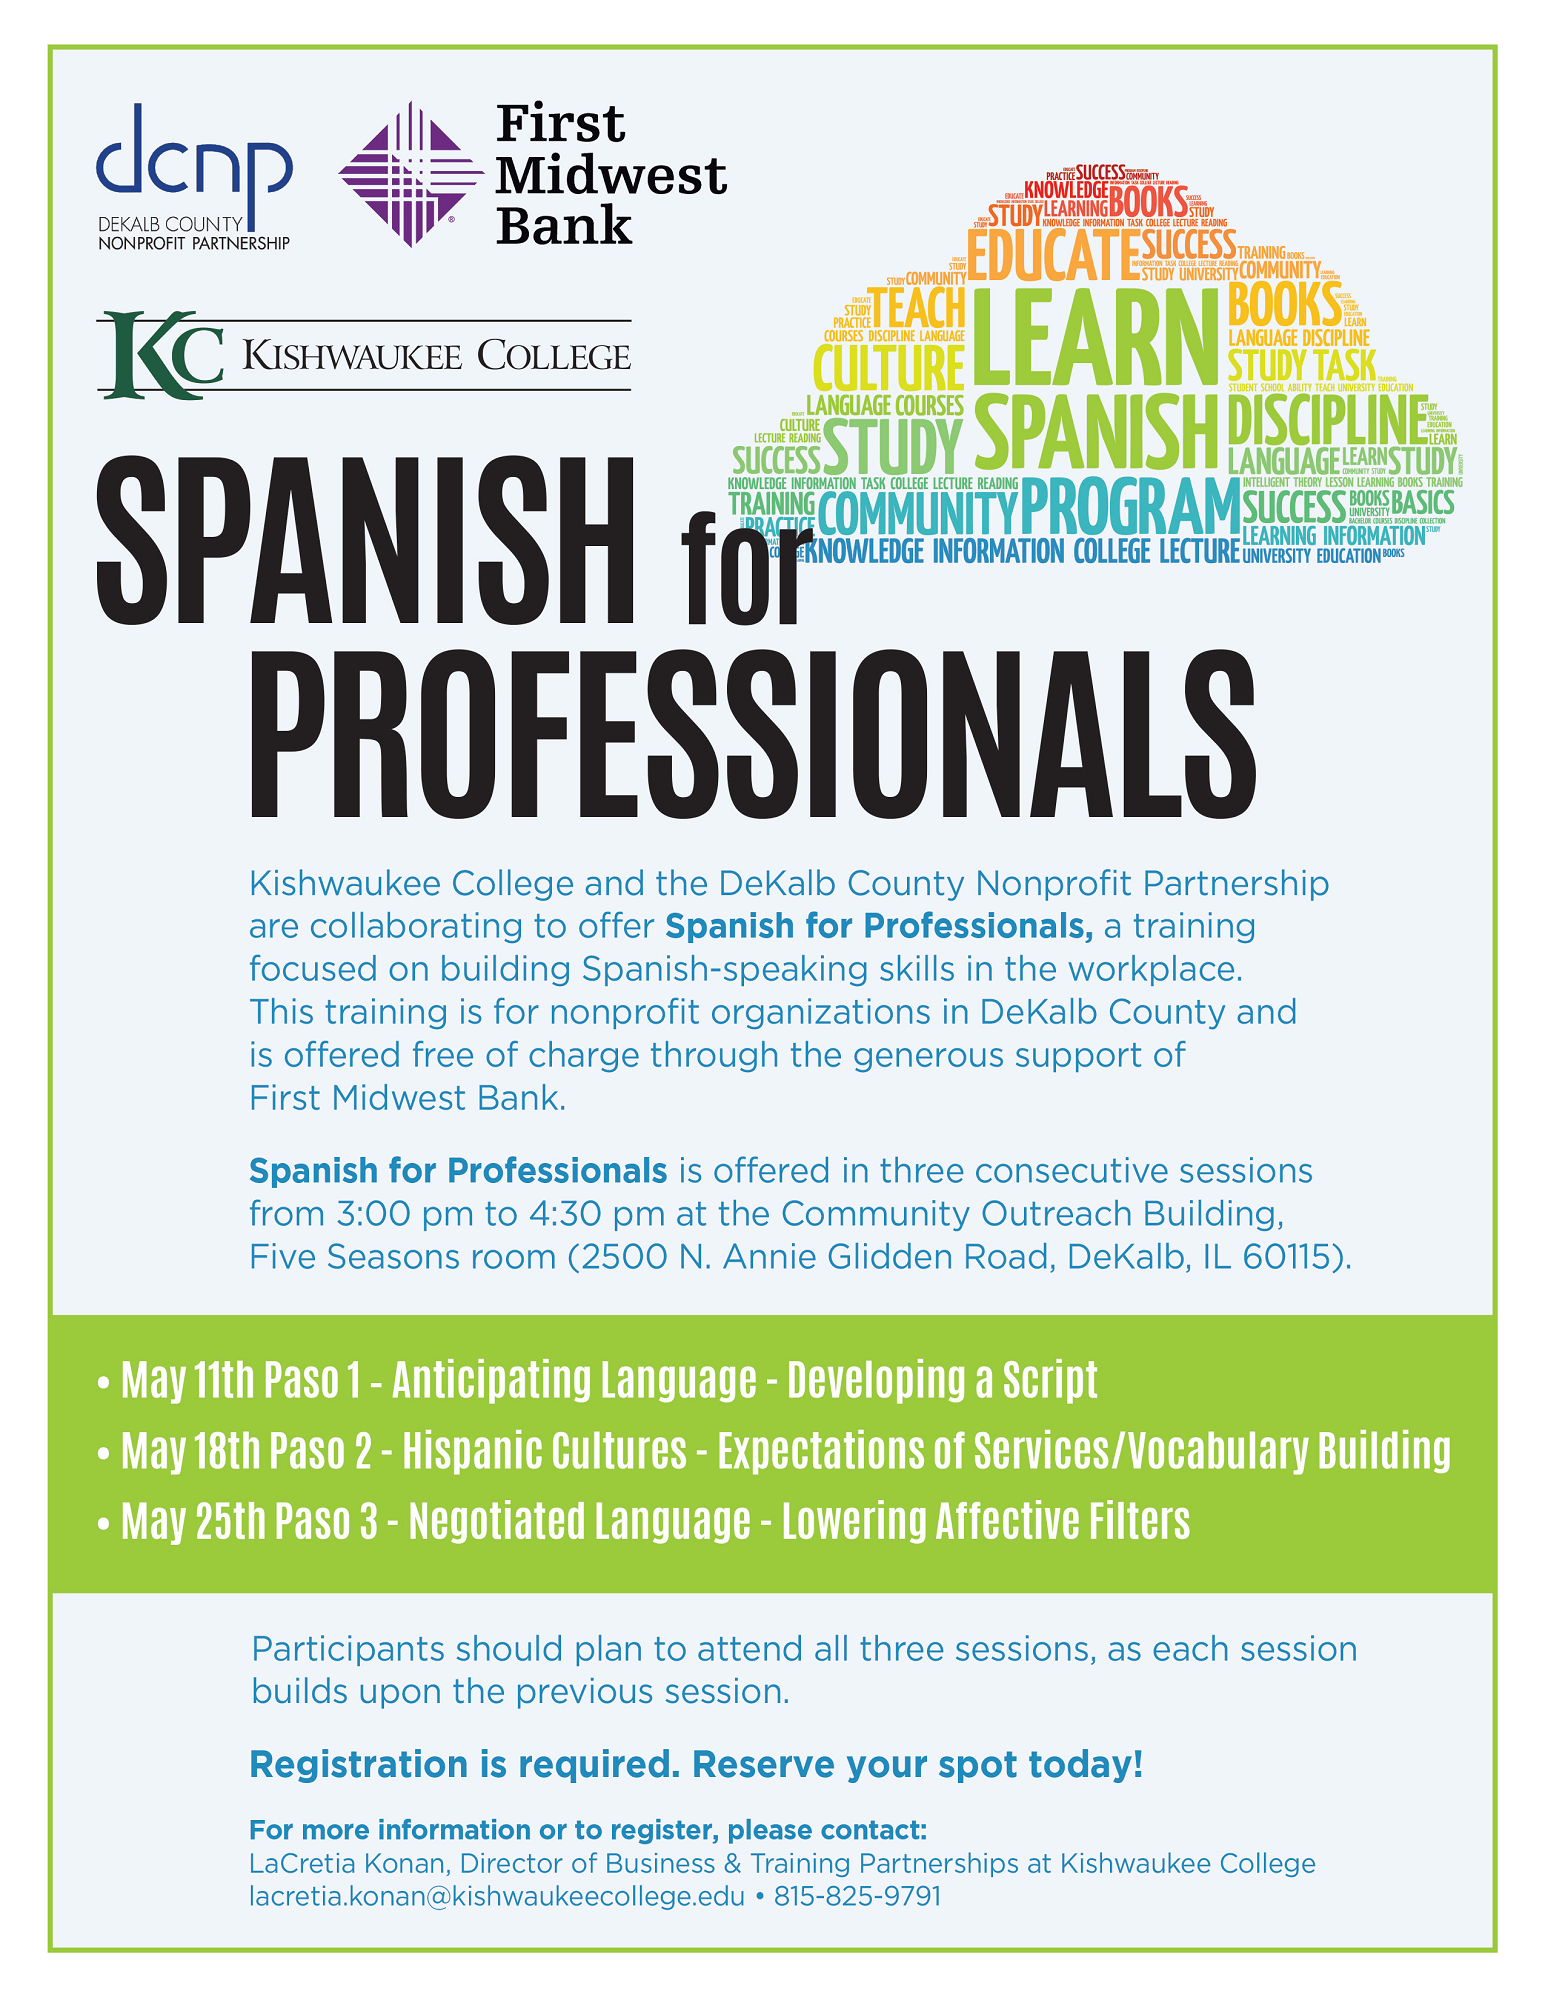 Spanish for Professionals